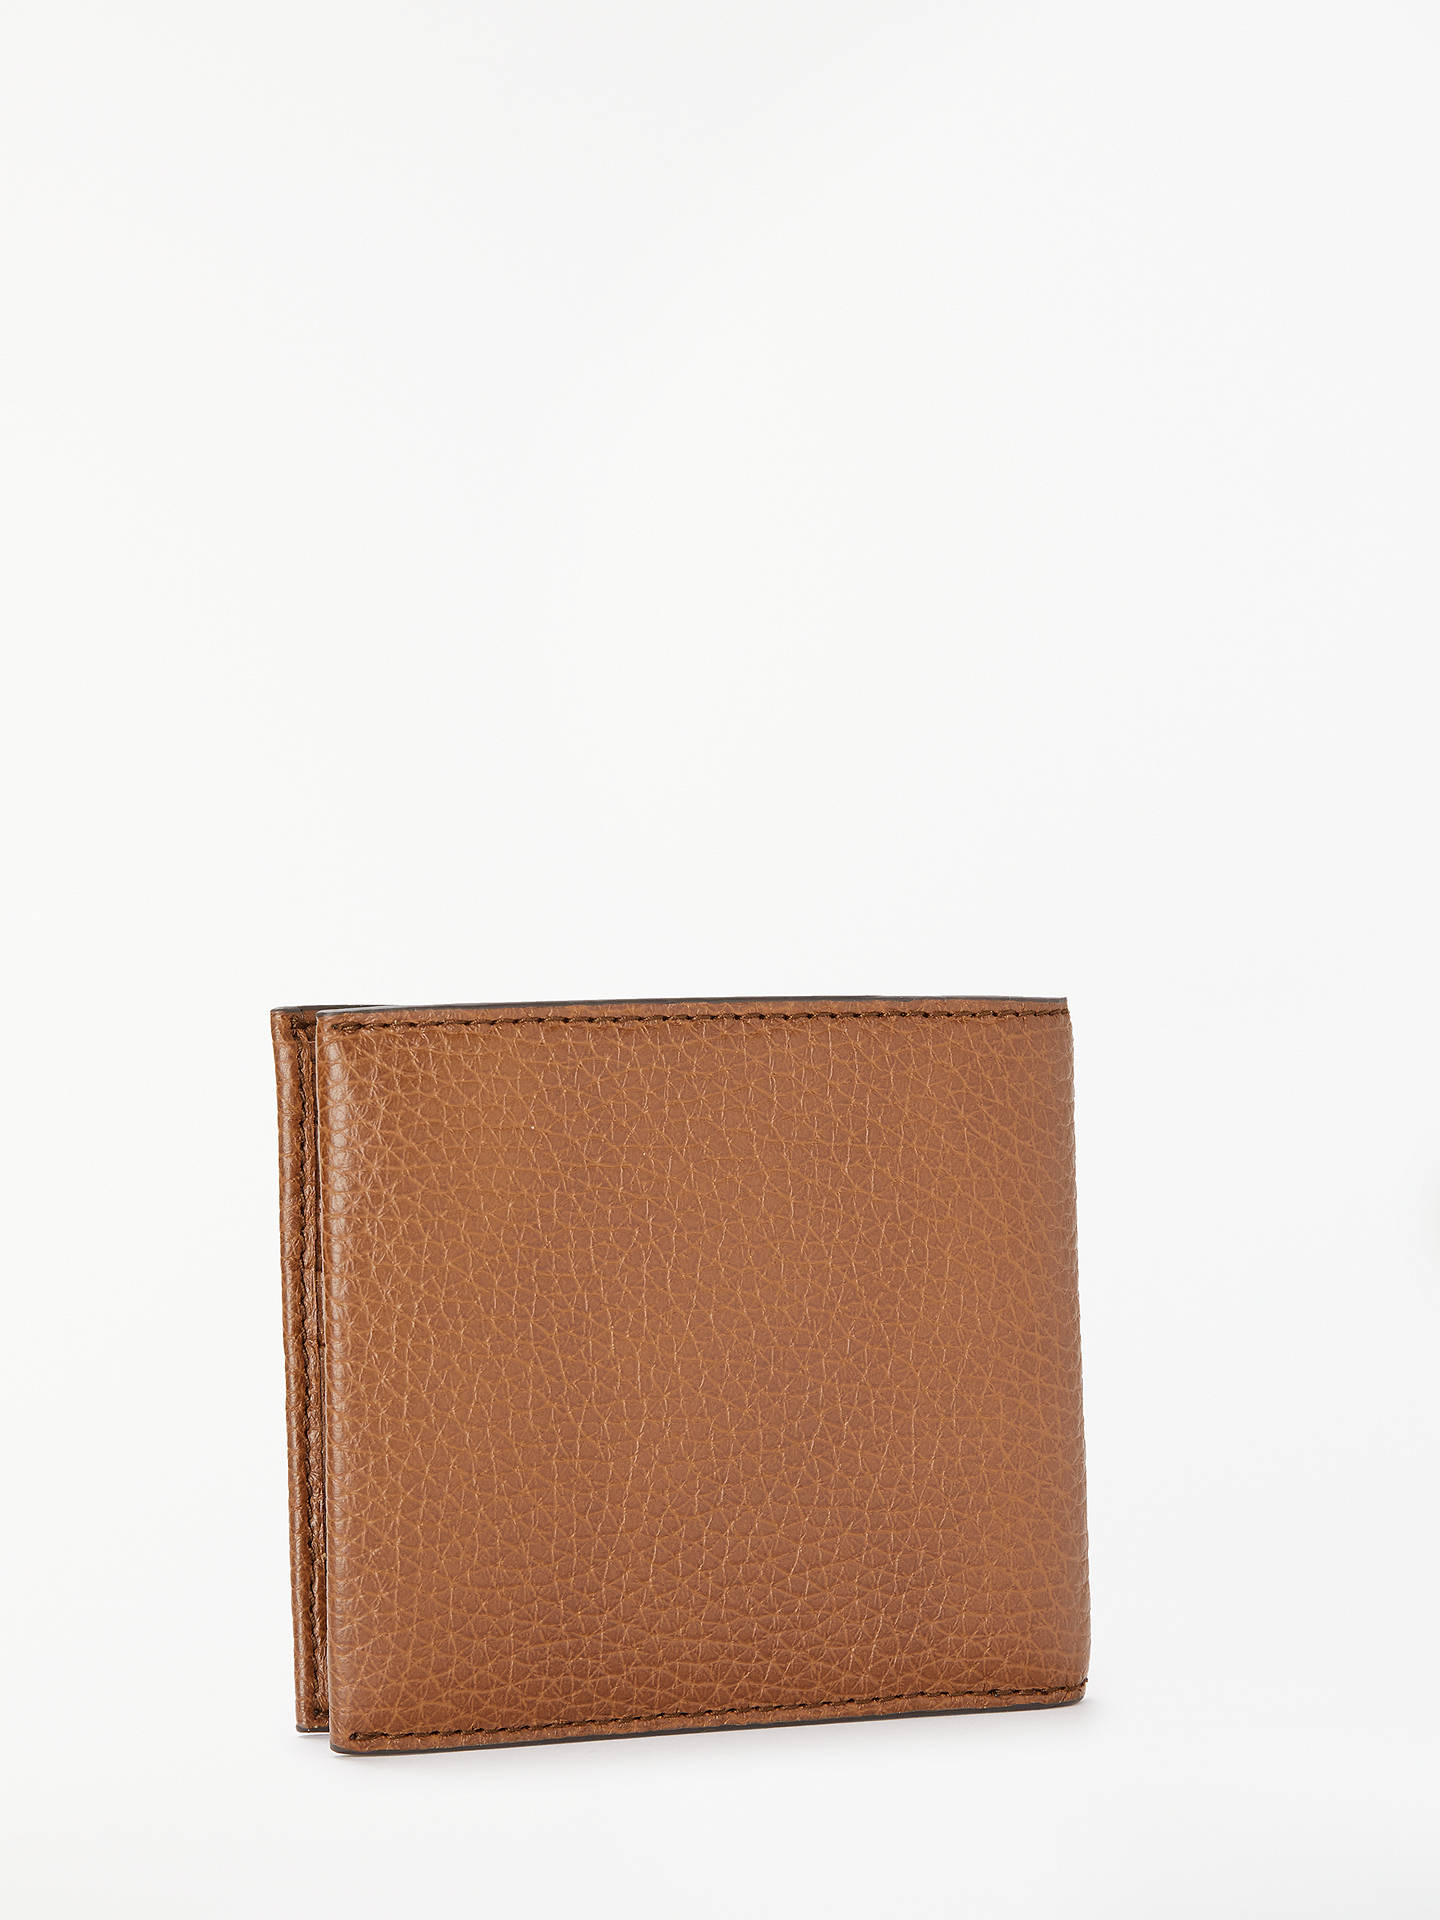 BuyBOSS Crosstown Grained Italian Leather Coin Wallet, Tan Online at johnlewis.com